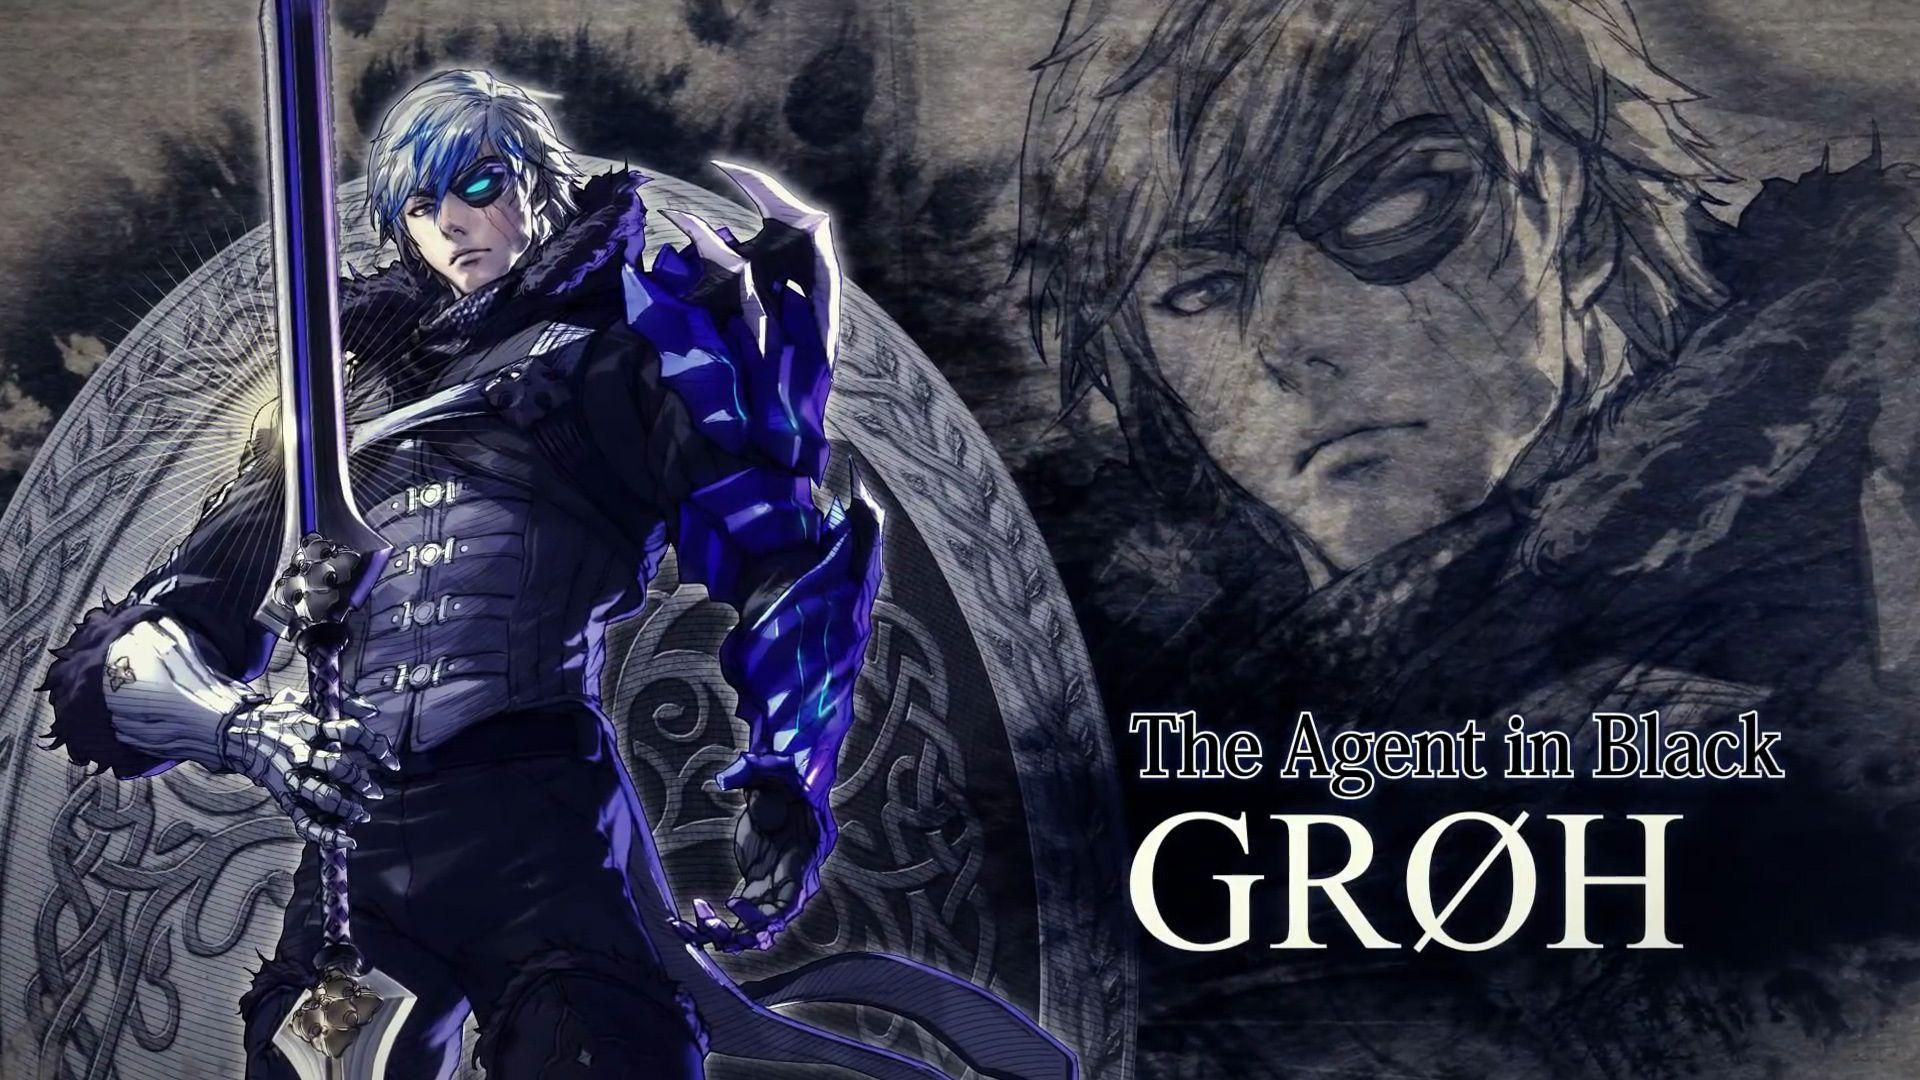 Groh. Wallpapers from Soulcalibur VI